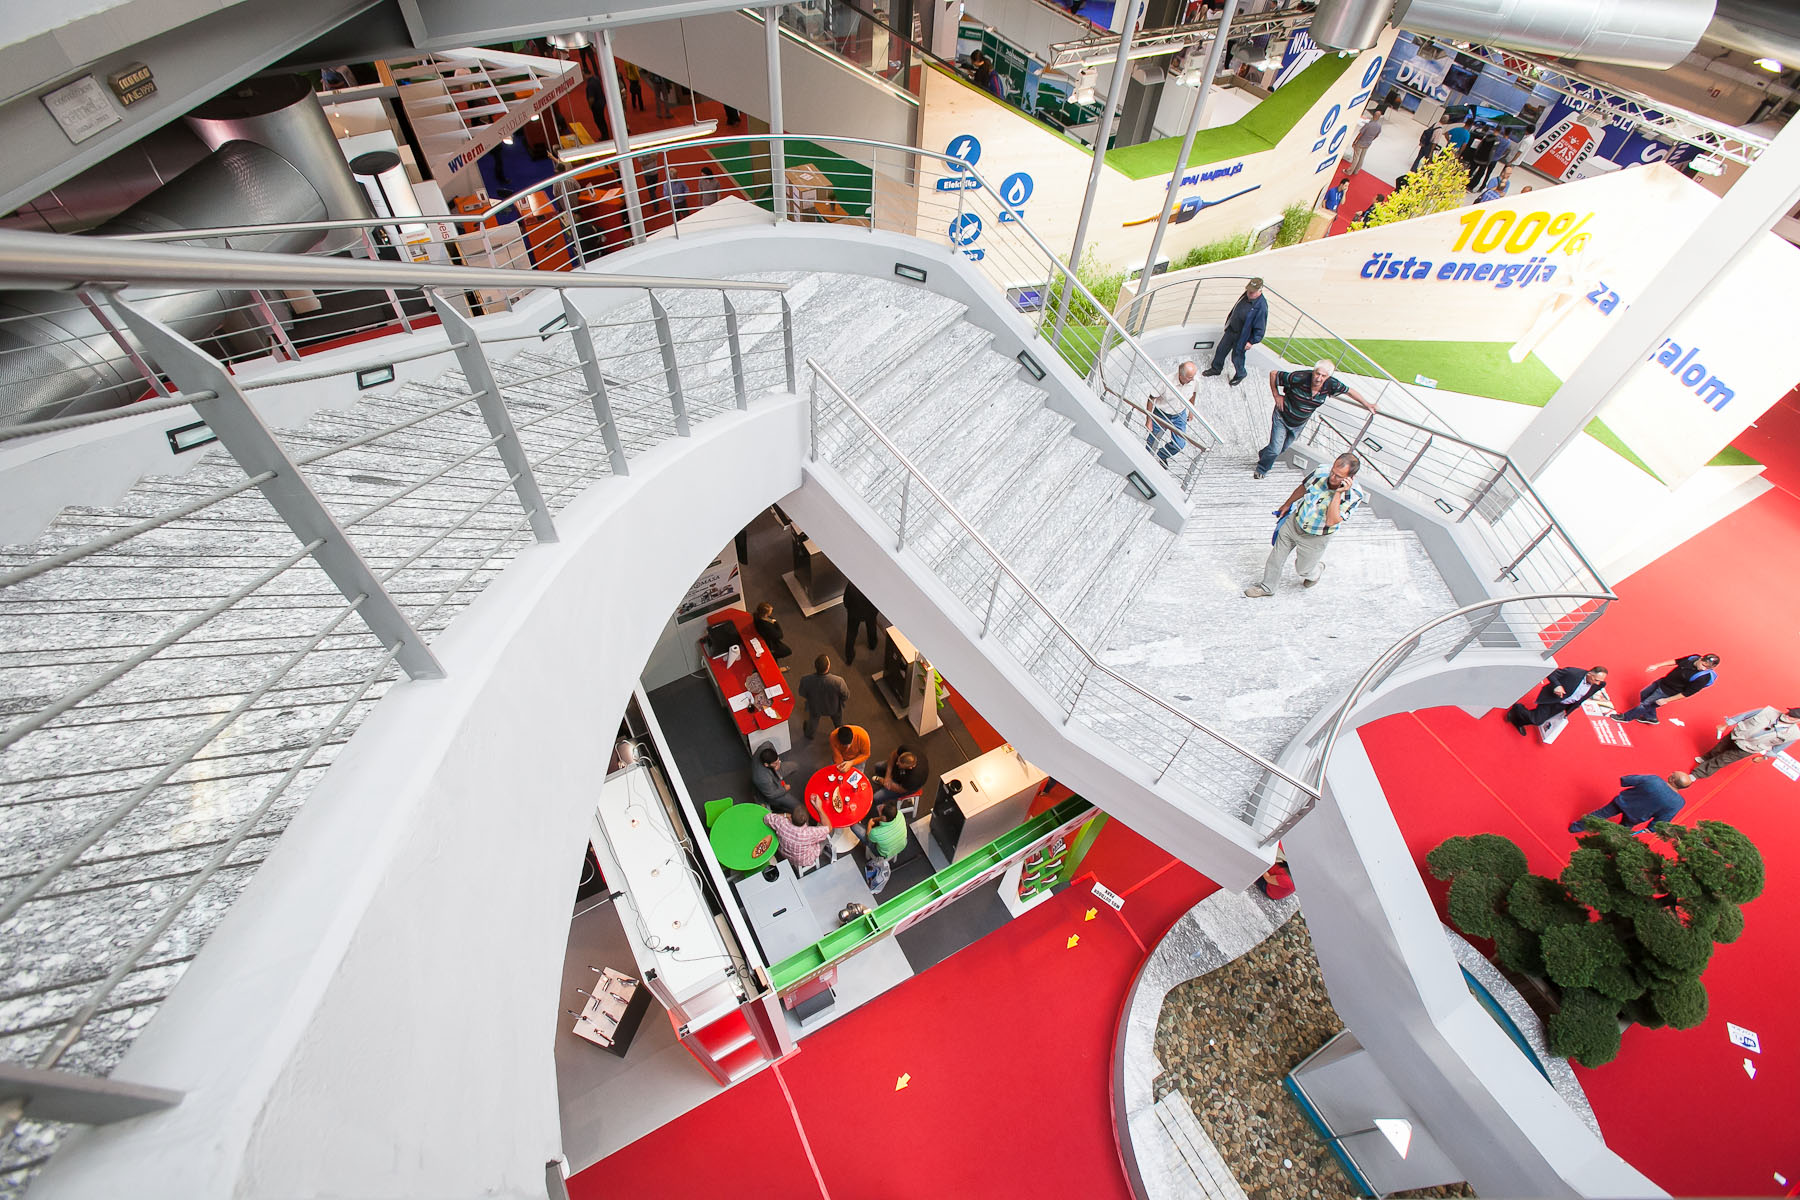 The fairground at the 48th International Trade Fair in Celje, Slovenia, Sep. 8, 2015.